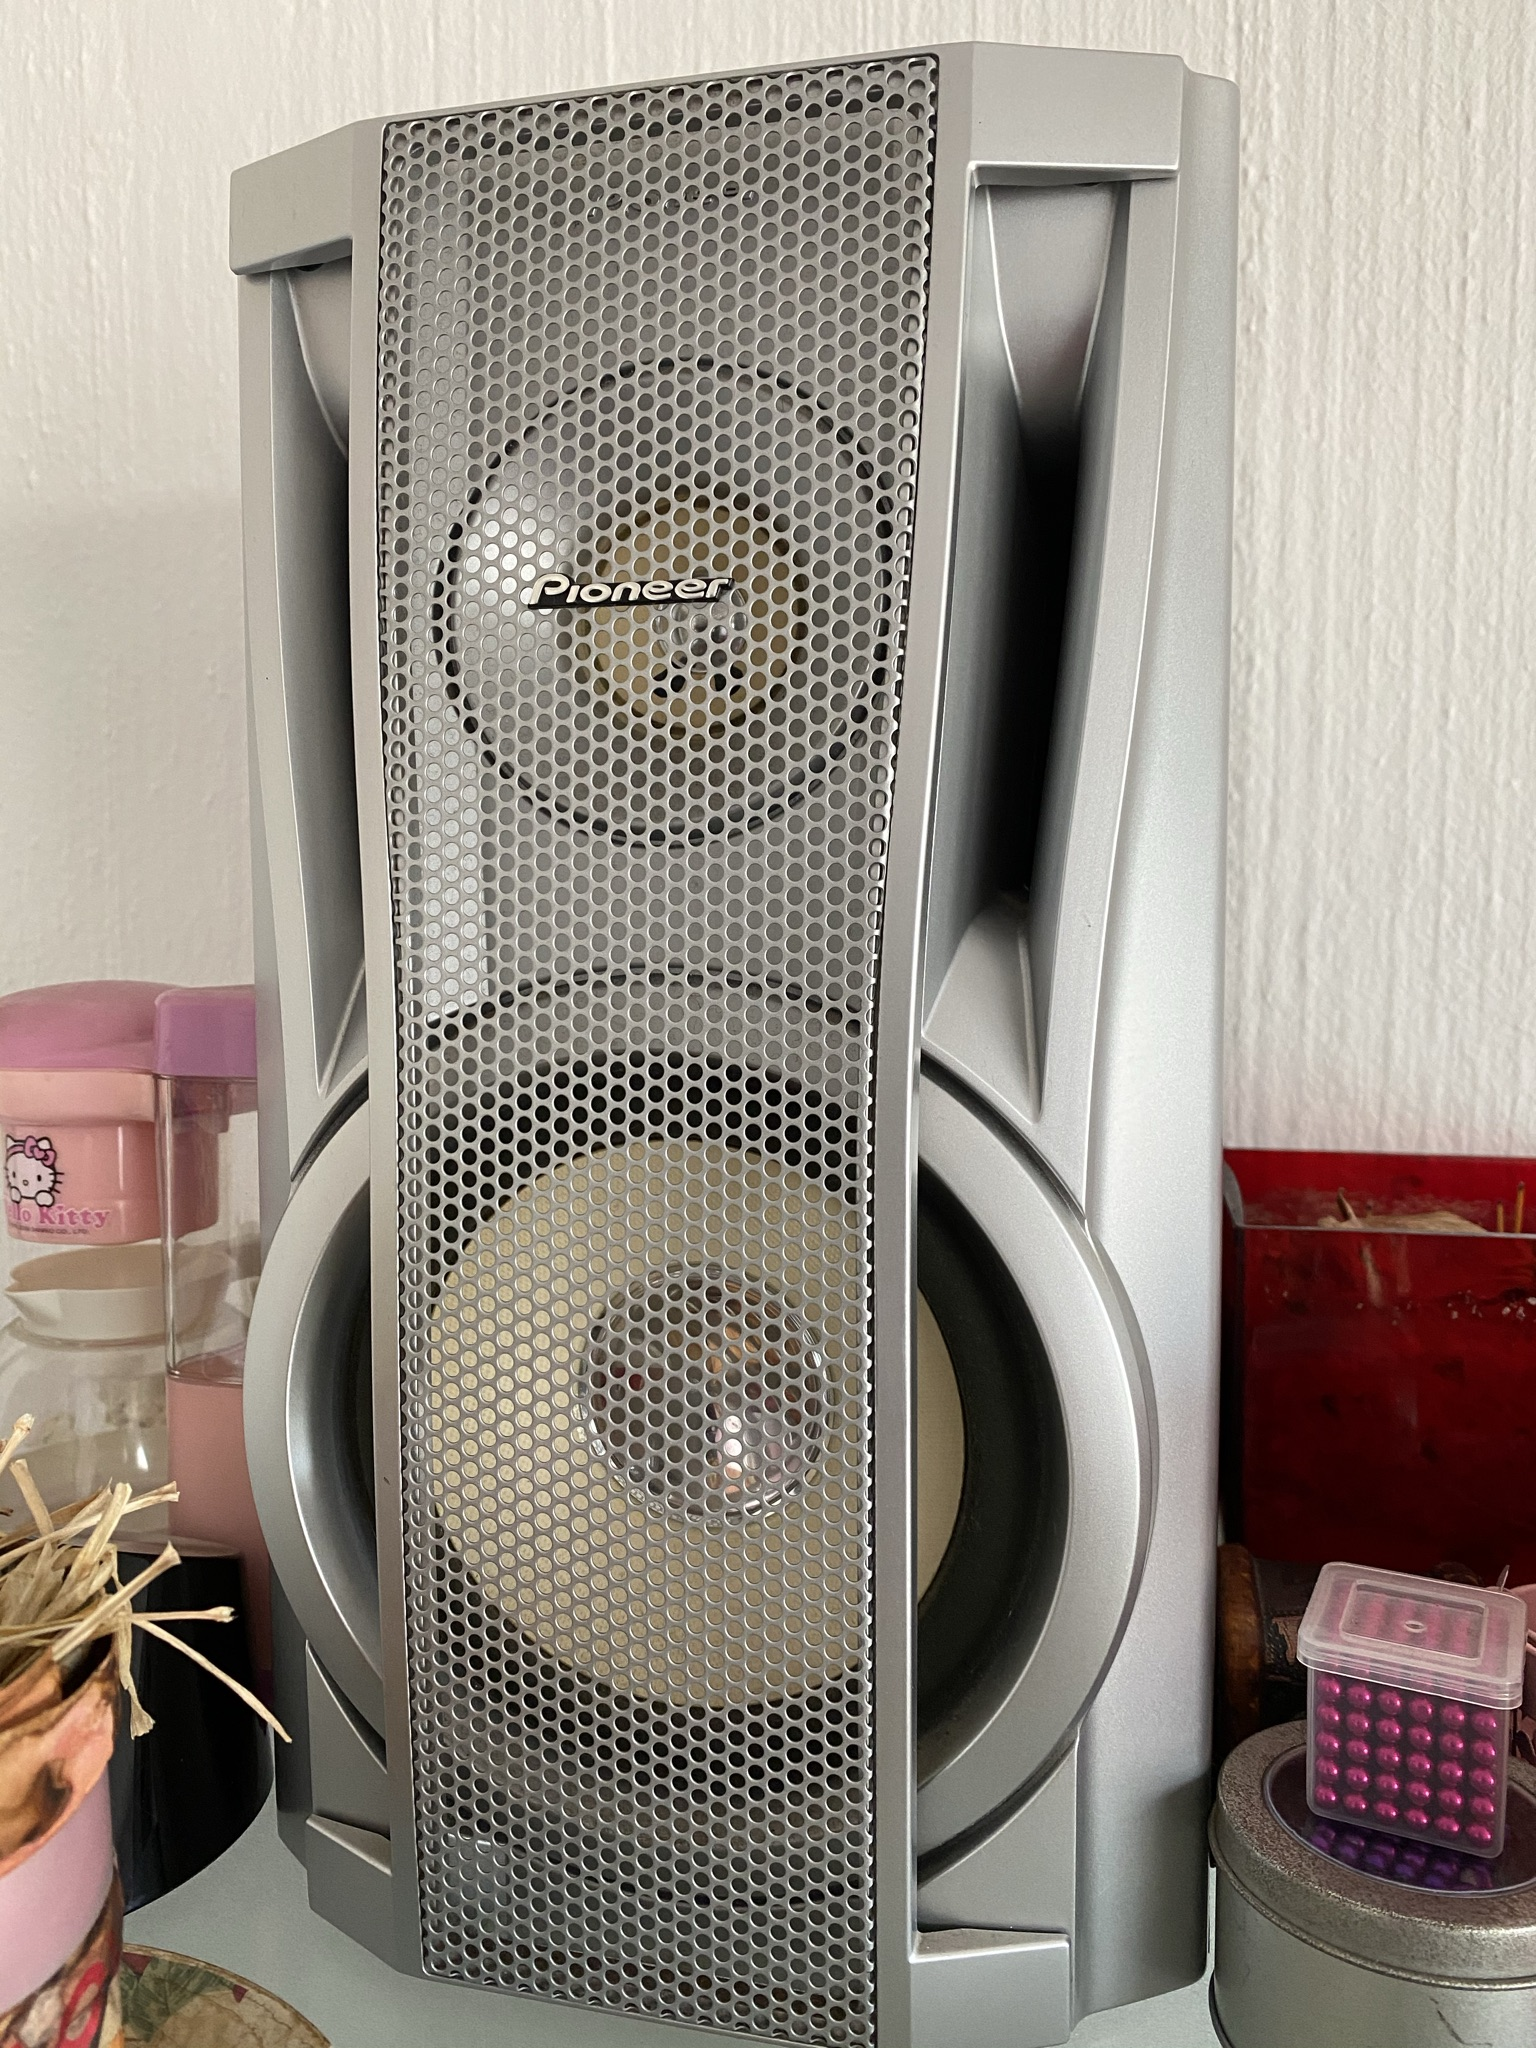 Pioneer HIFI Surround Sound 5.1 DTS system all in one